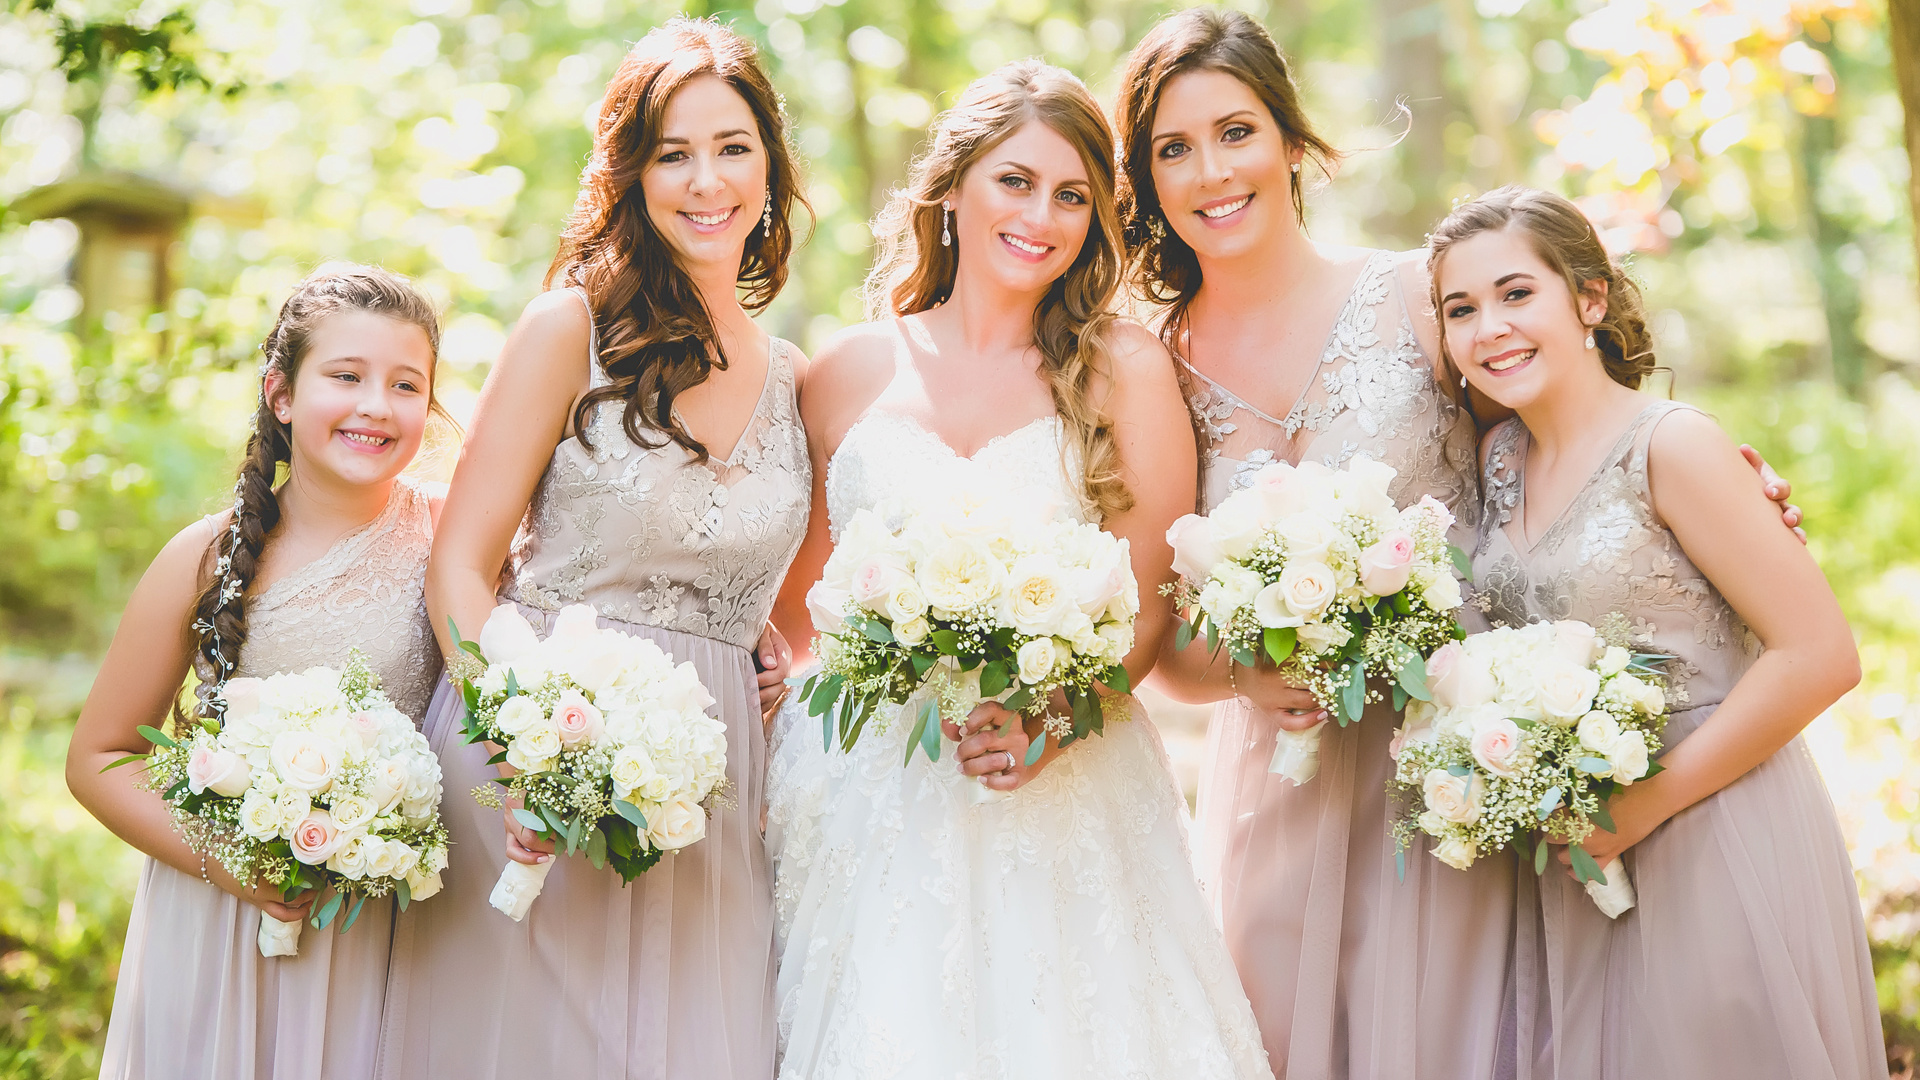 What You Need To Know About Having Junior Bridesmaids